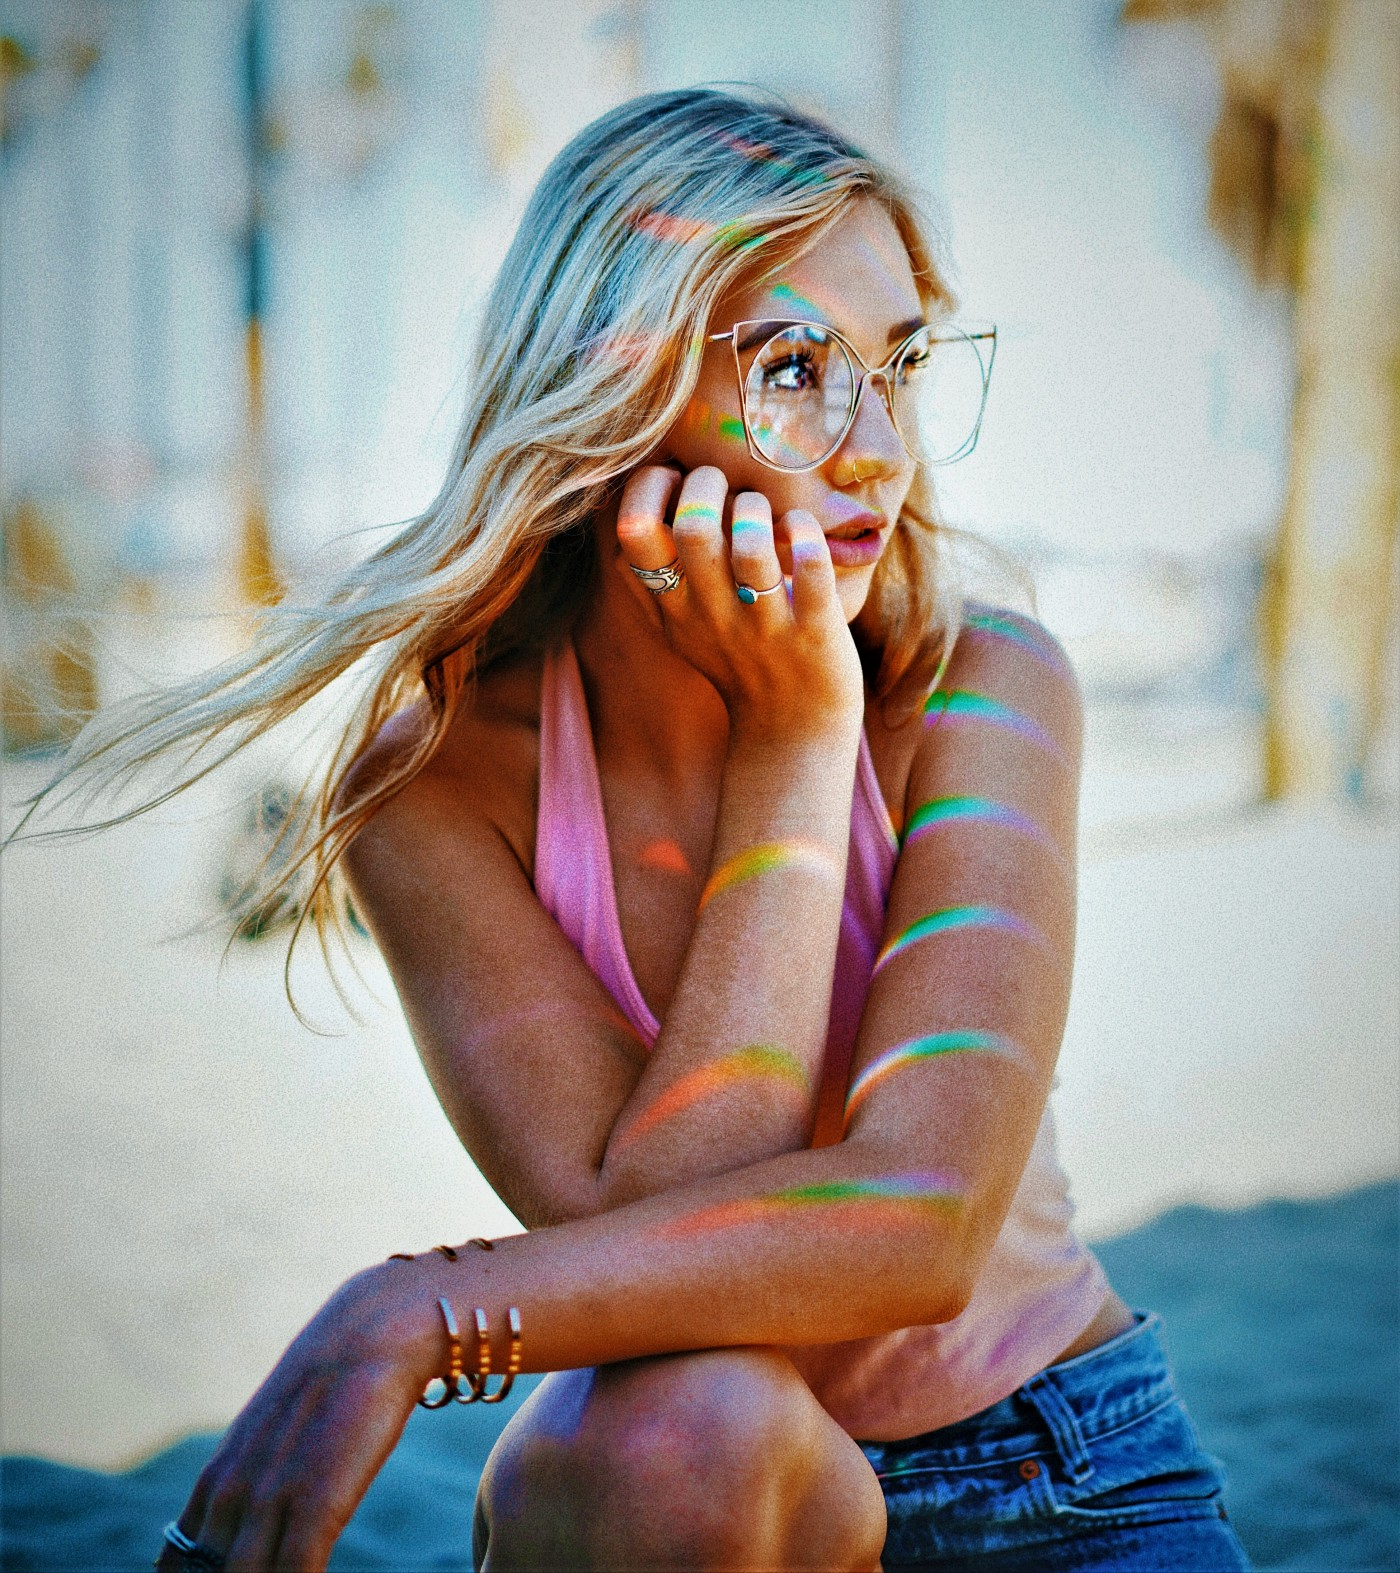 pensive girl with long blonde hair wearing glasses and pink top